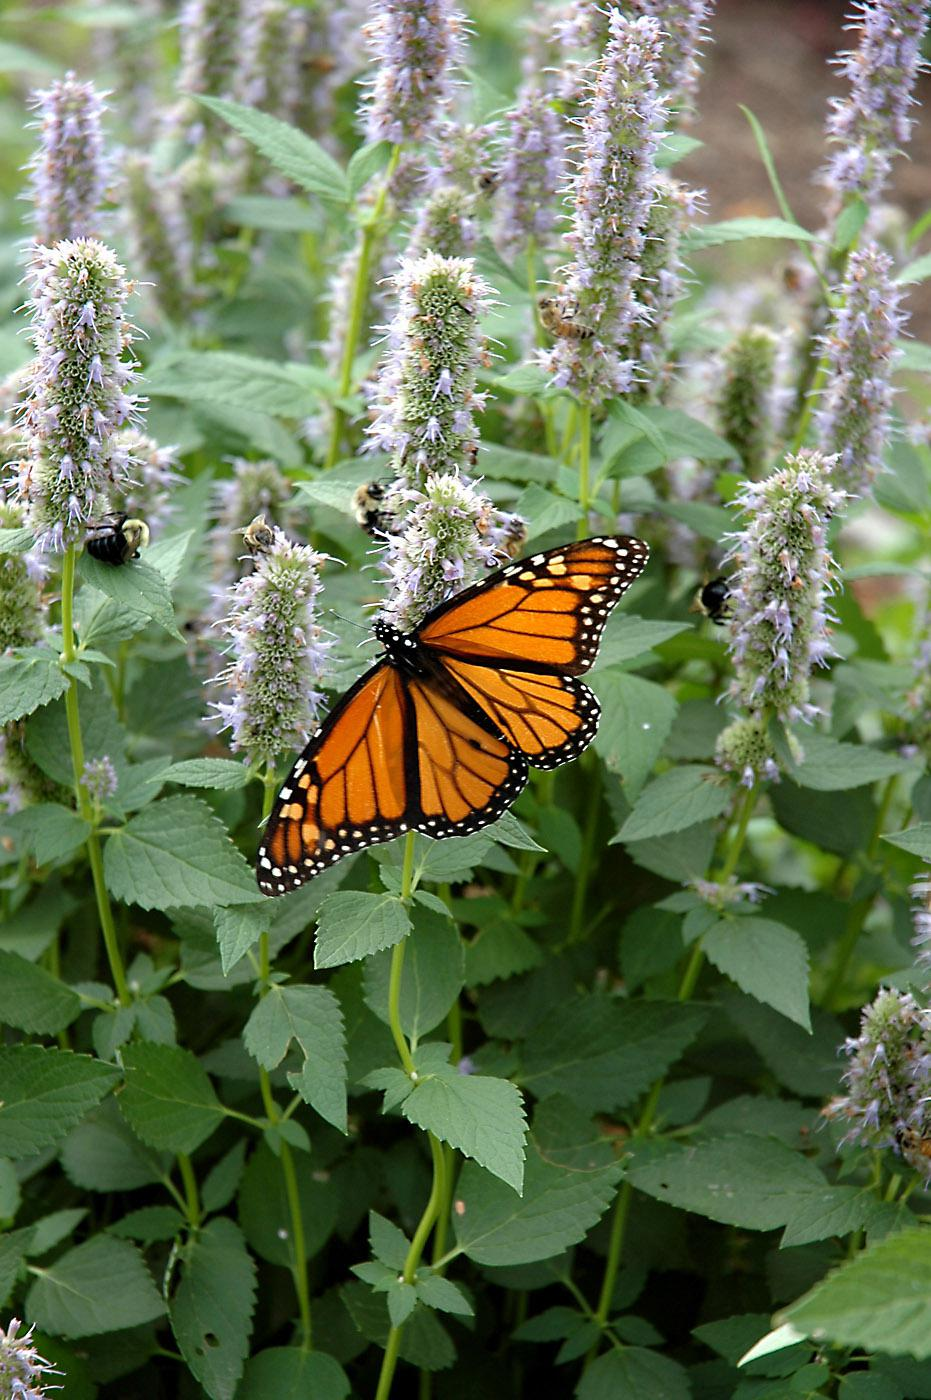 An orange Monarch butterfly feeding on the light blue-lavender flowers of the Blue Fortune agastache give this garden a complementary color scheme in motion.